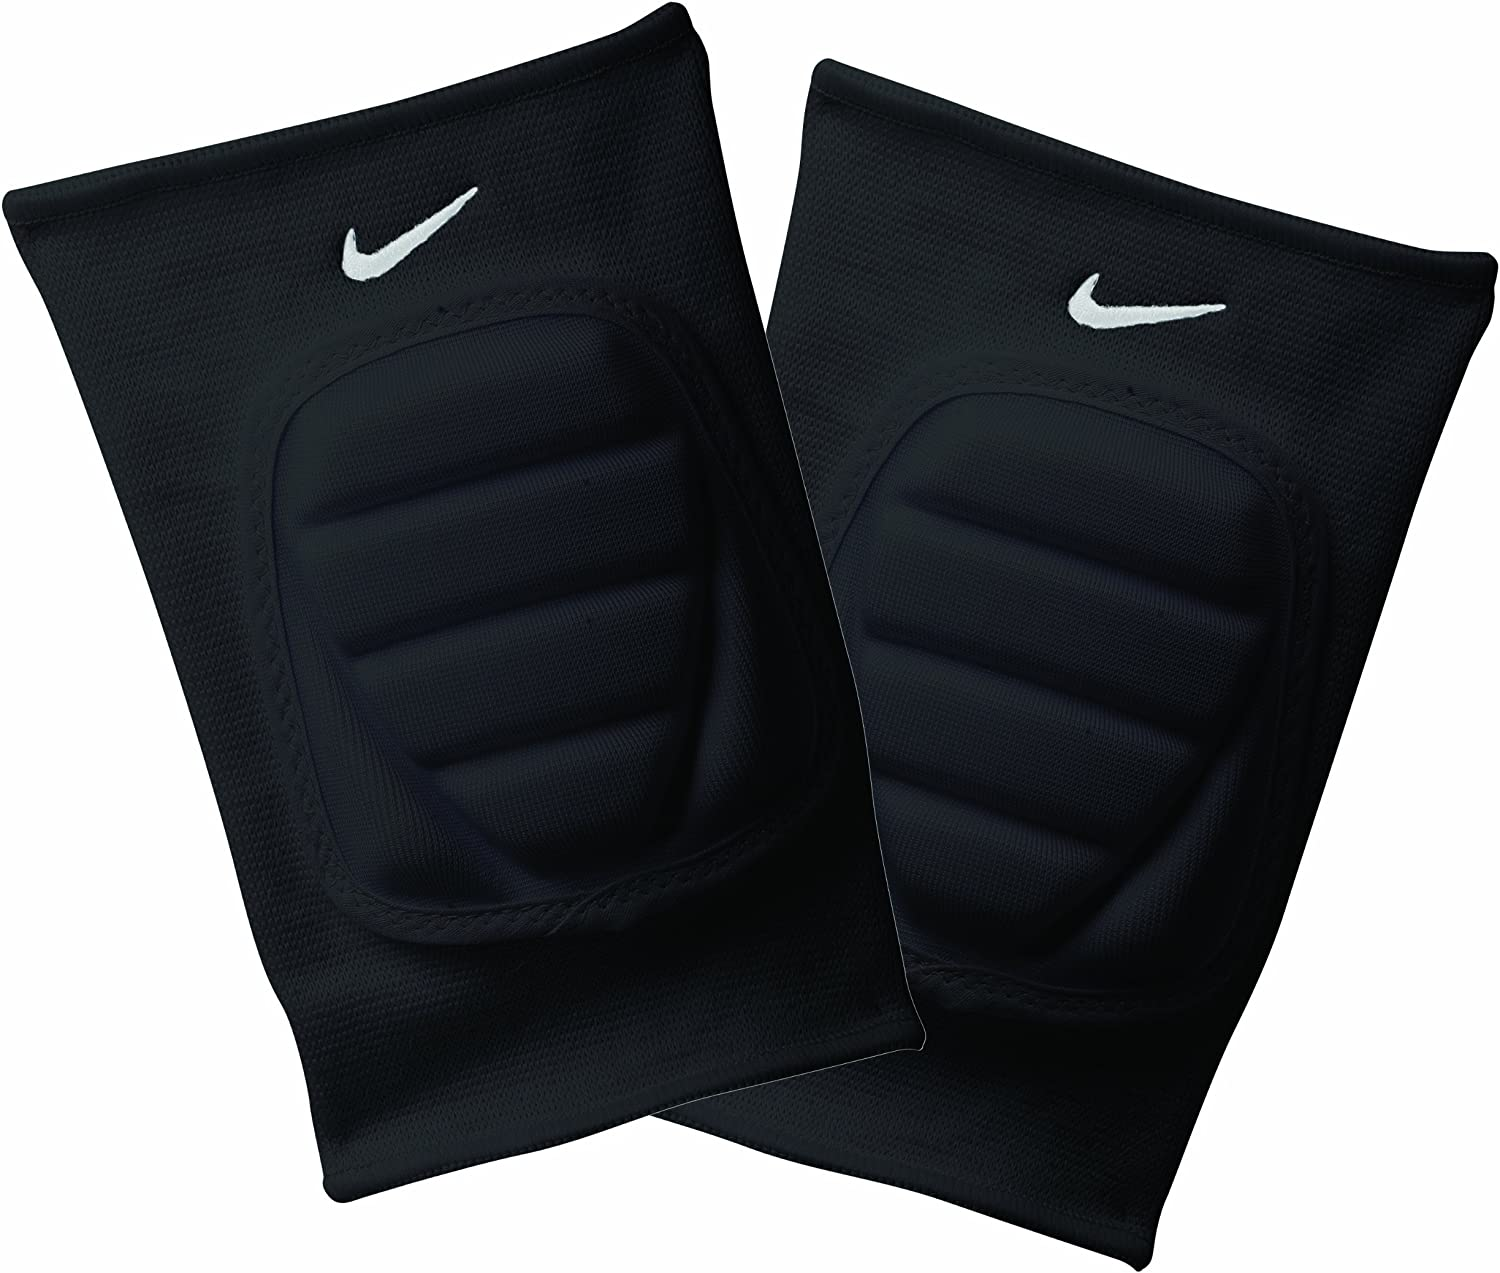 Amazon Com Nike Bubble Knee Pads Black Grey White X Small Small Volleyball Knee Pads Sports Outdoors